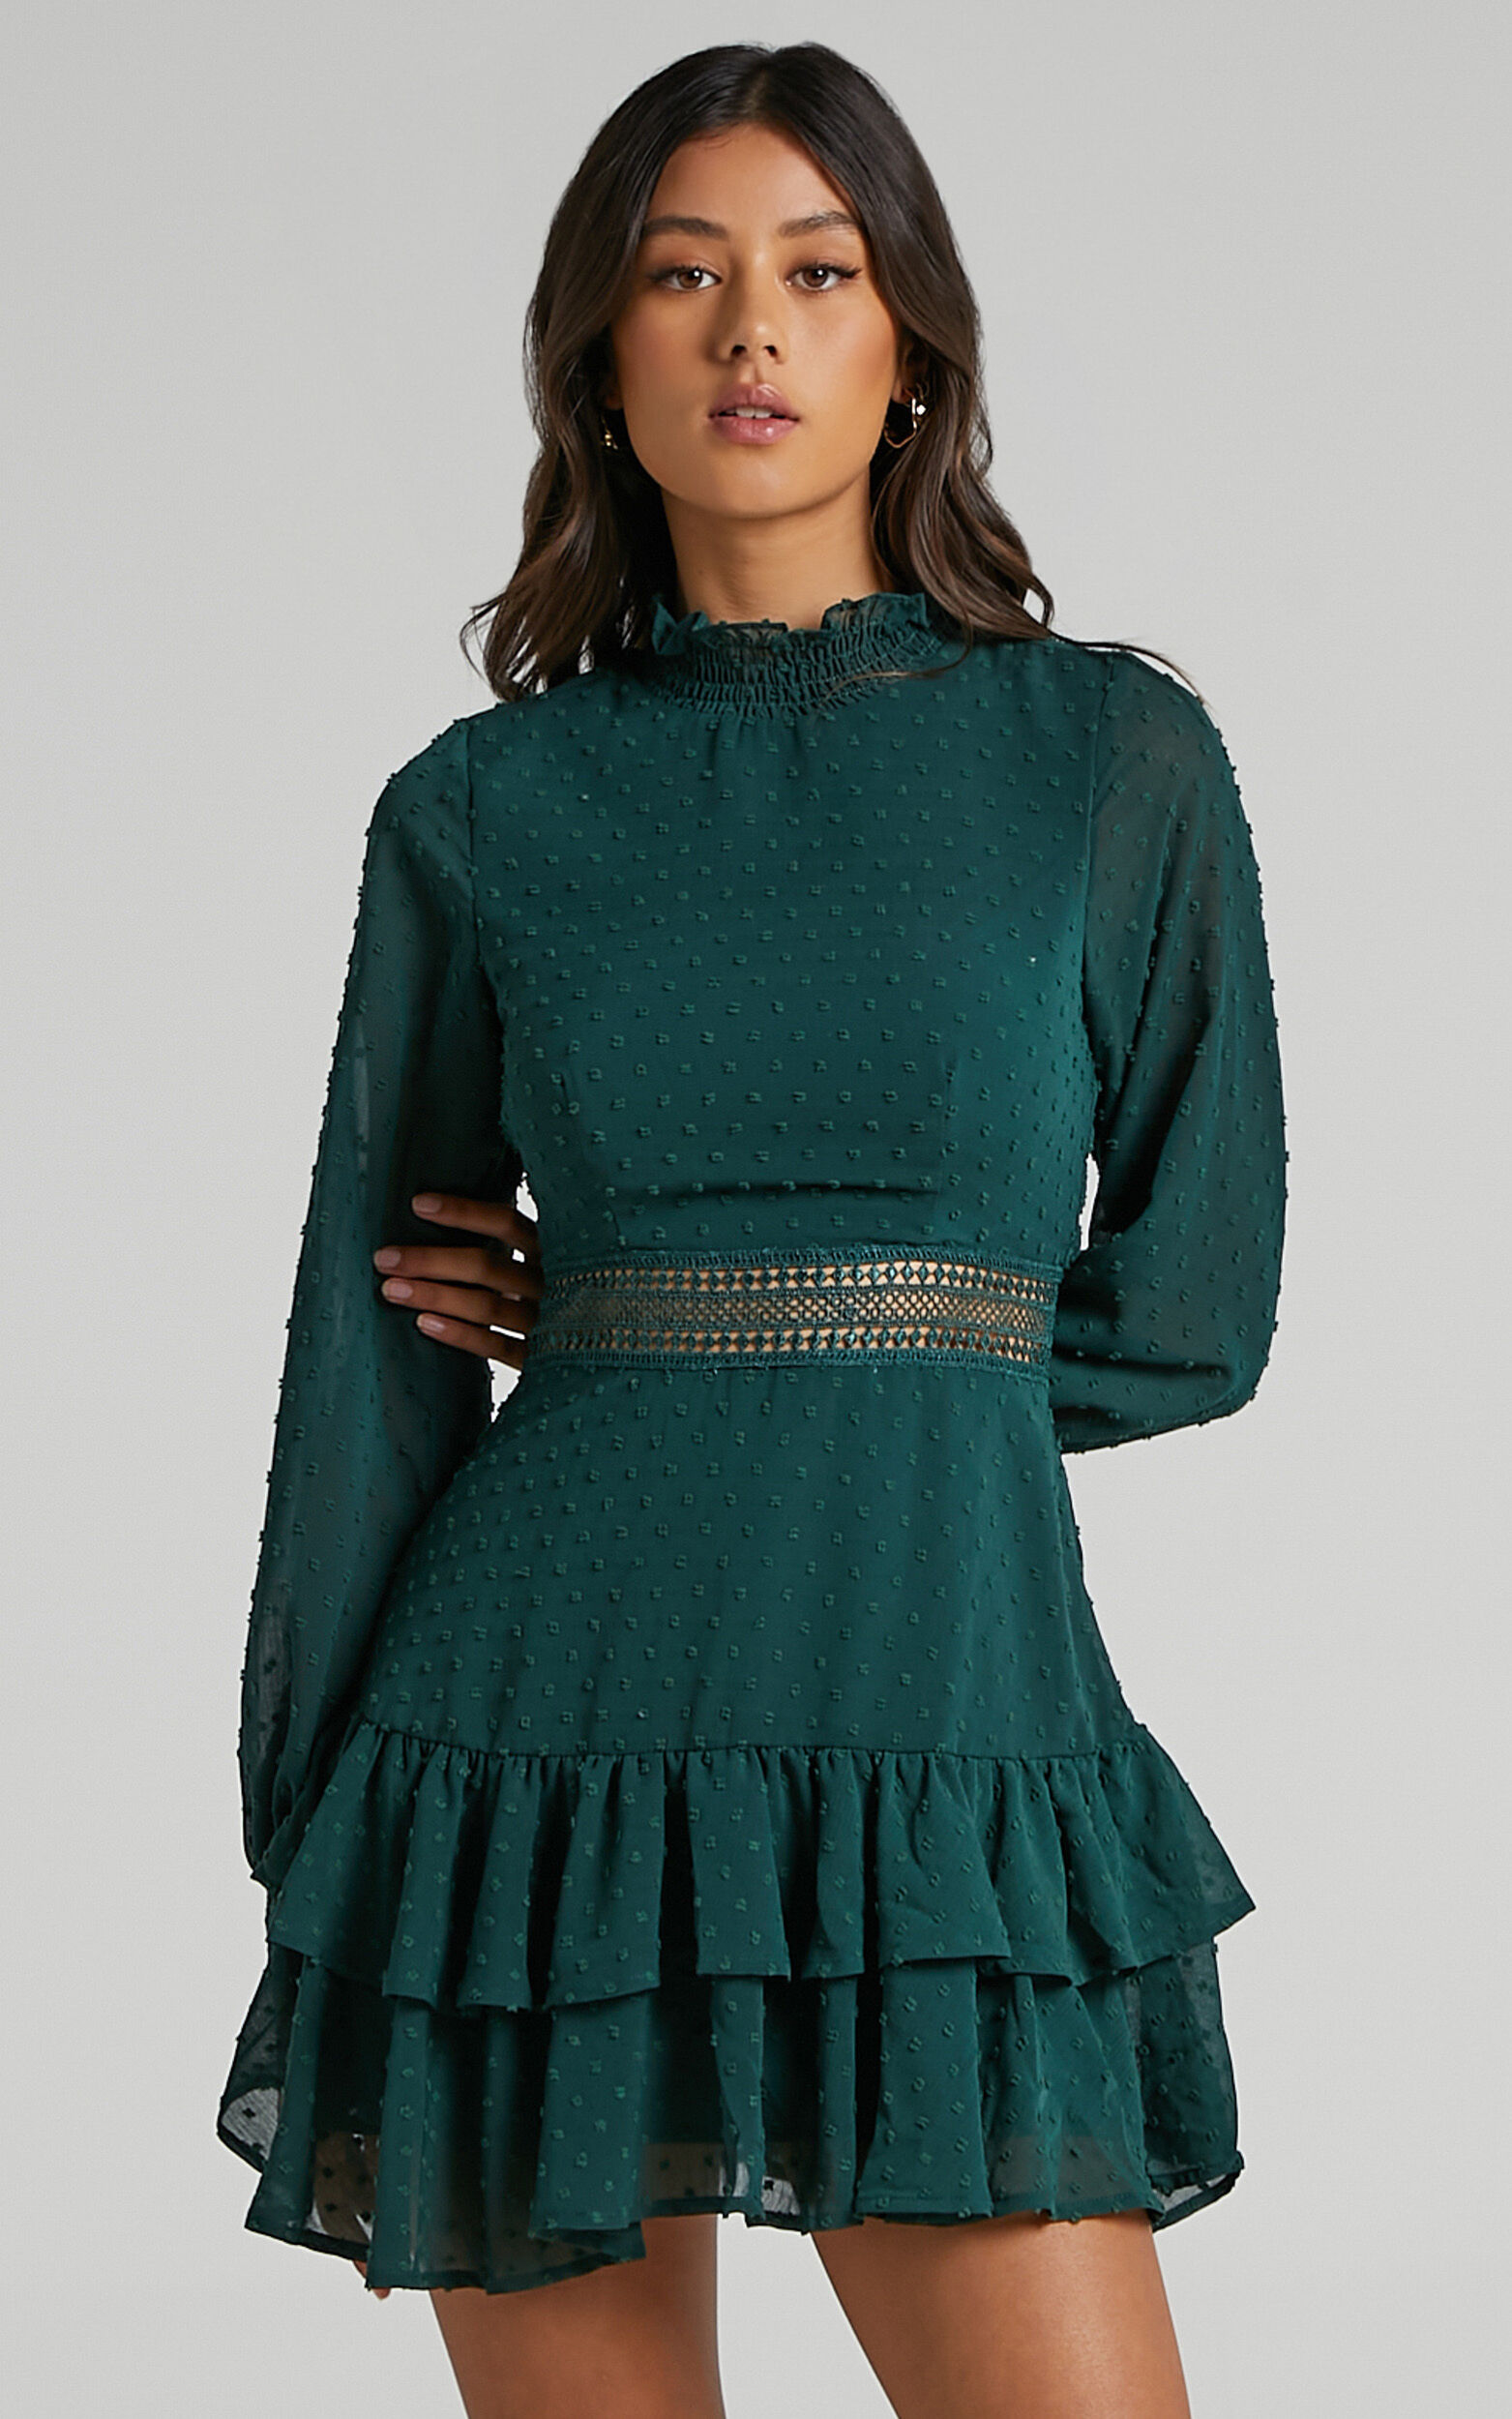 Are You Gonna Kiss Me Long Sleeve Mini Dress in Emerald - 20, GRN4, super-hi-res image number null